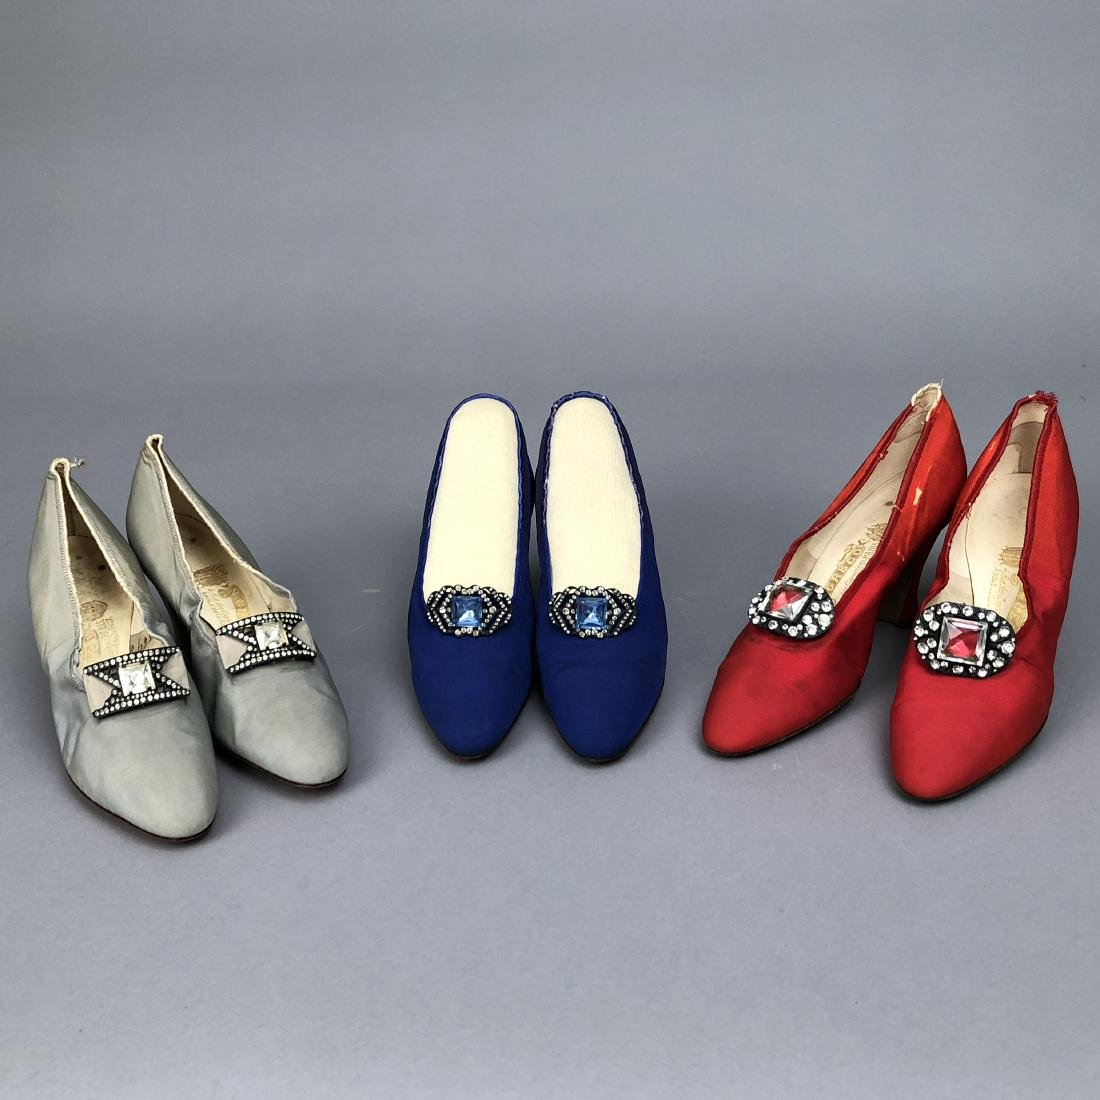 THREE PAIR GRECO JEWELED SILK PUMPS, 1925 - 1930